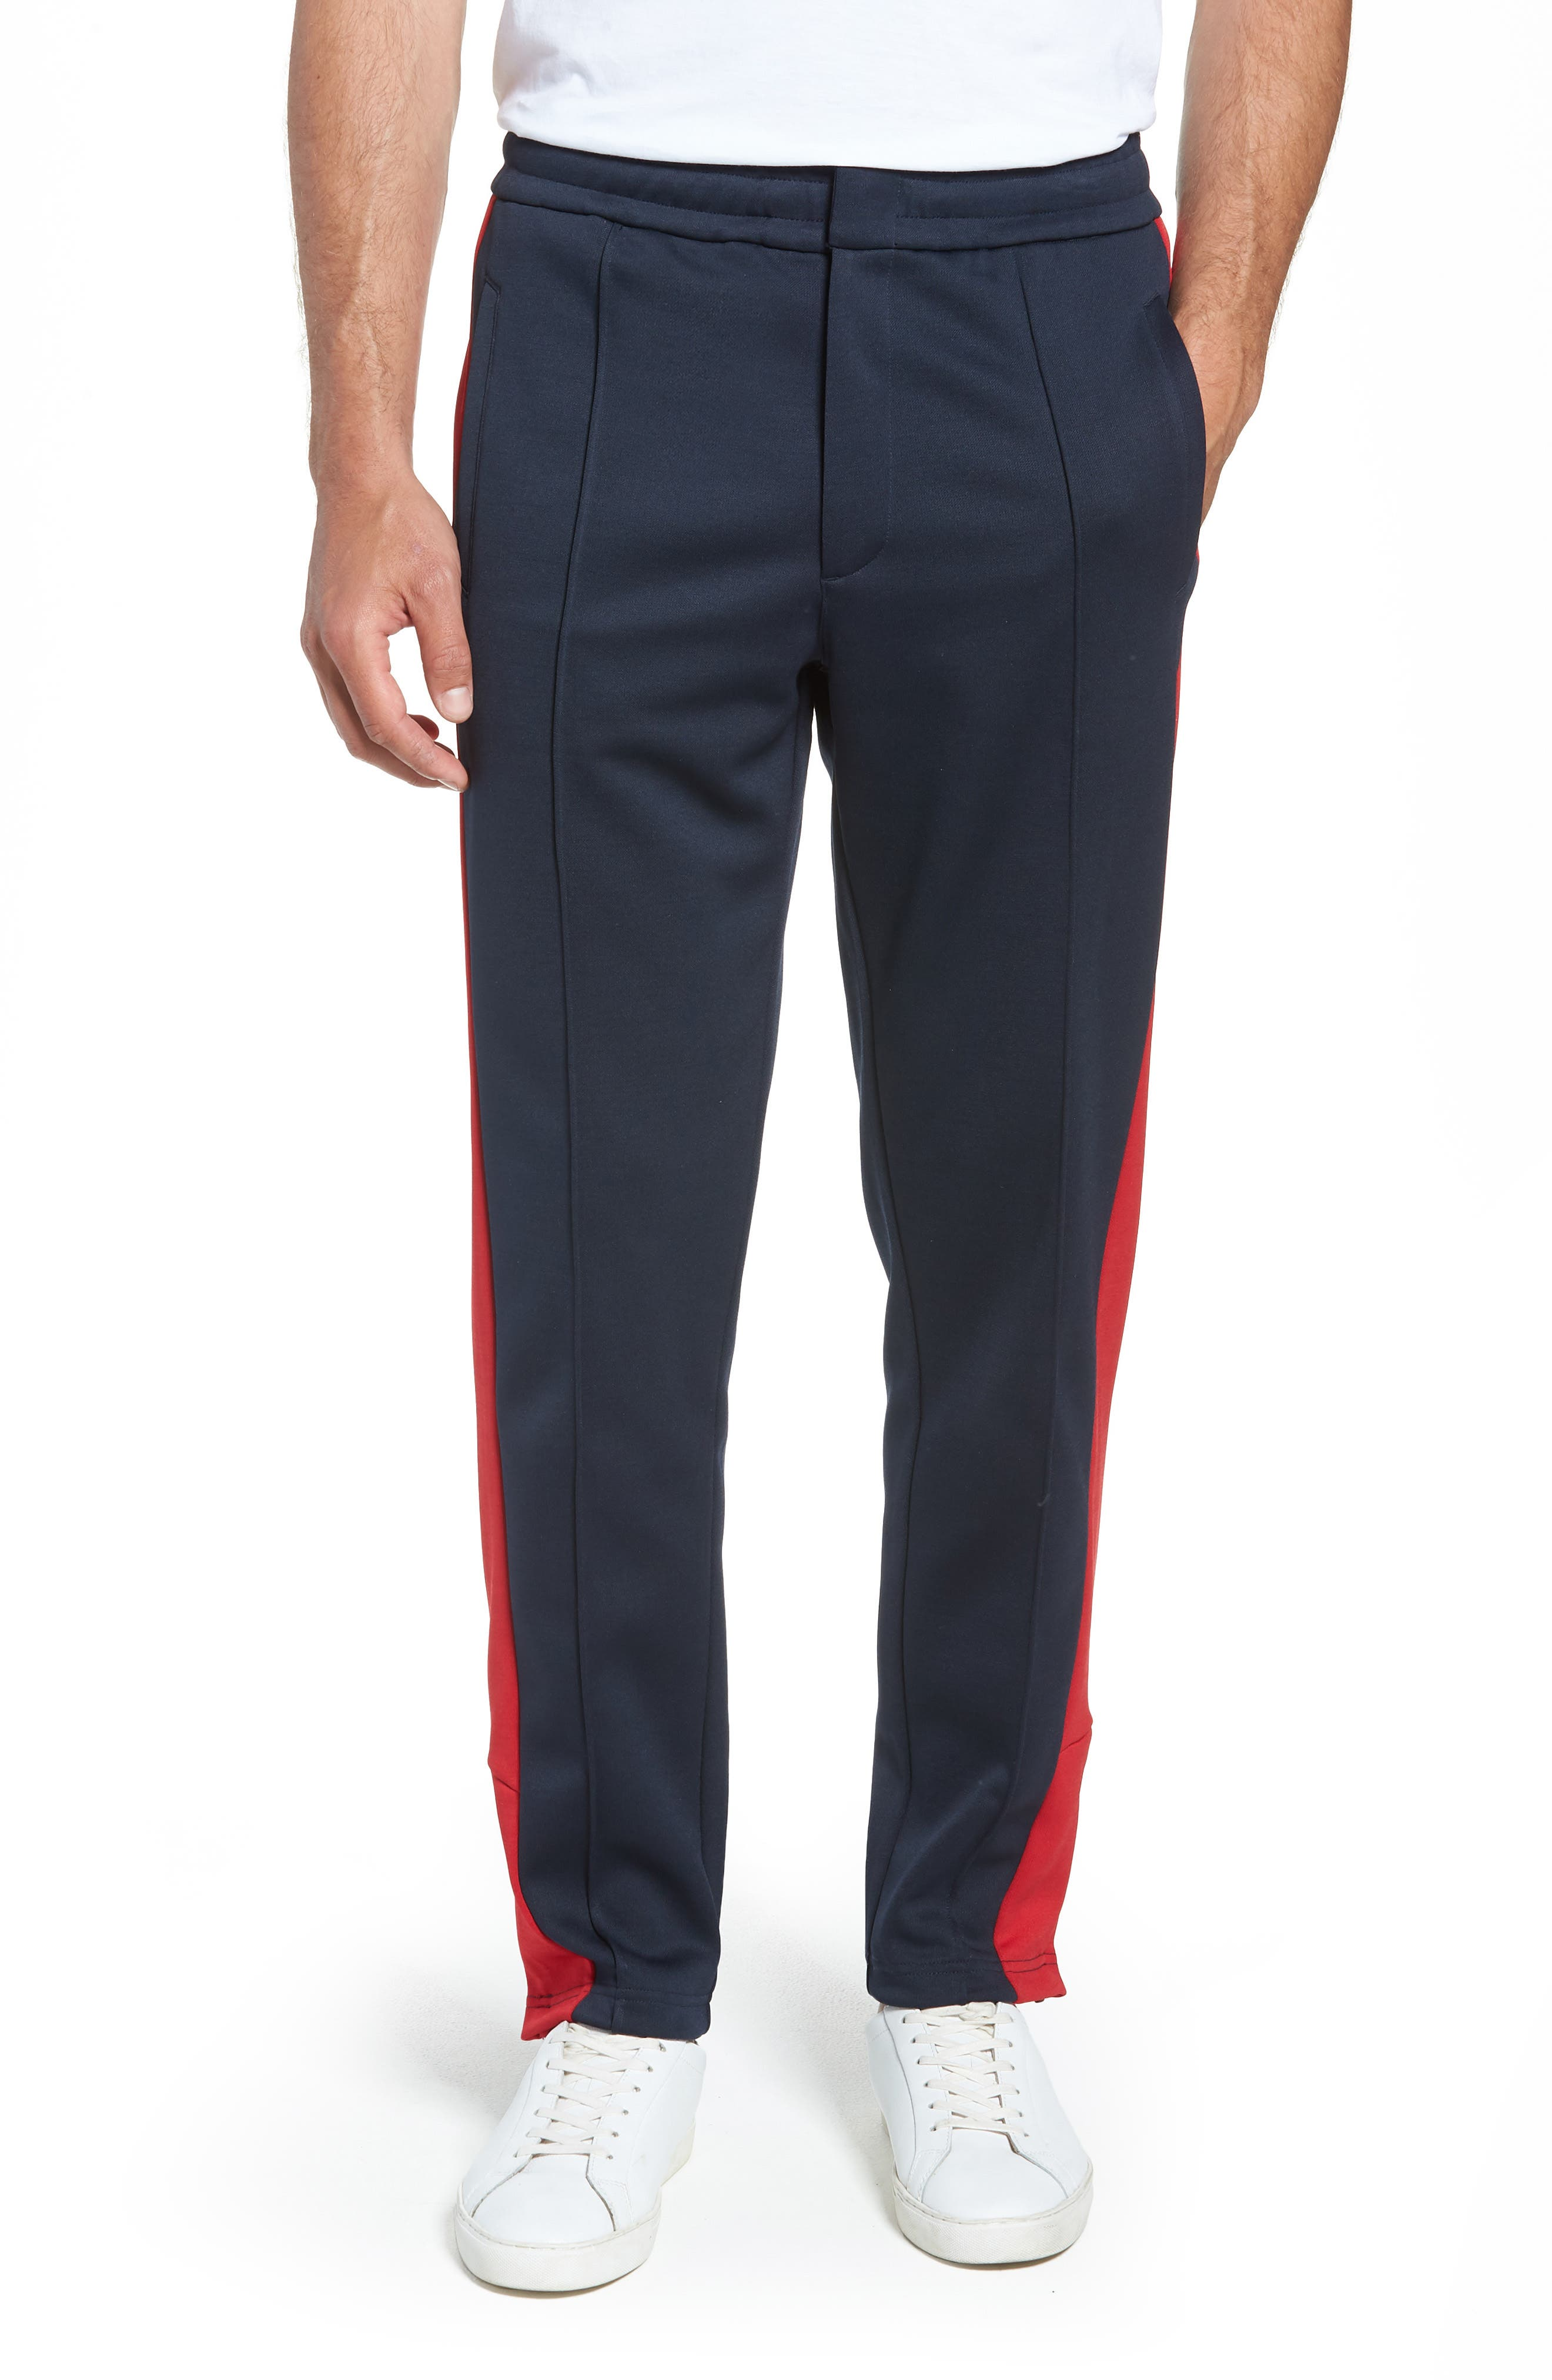 Club Slim Fit Track Pants,                             Main thumbnail 1, color,                             NAVY/ RED